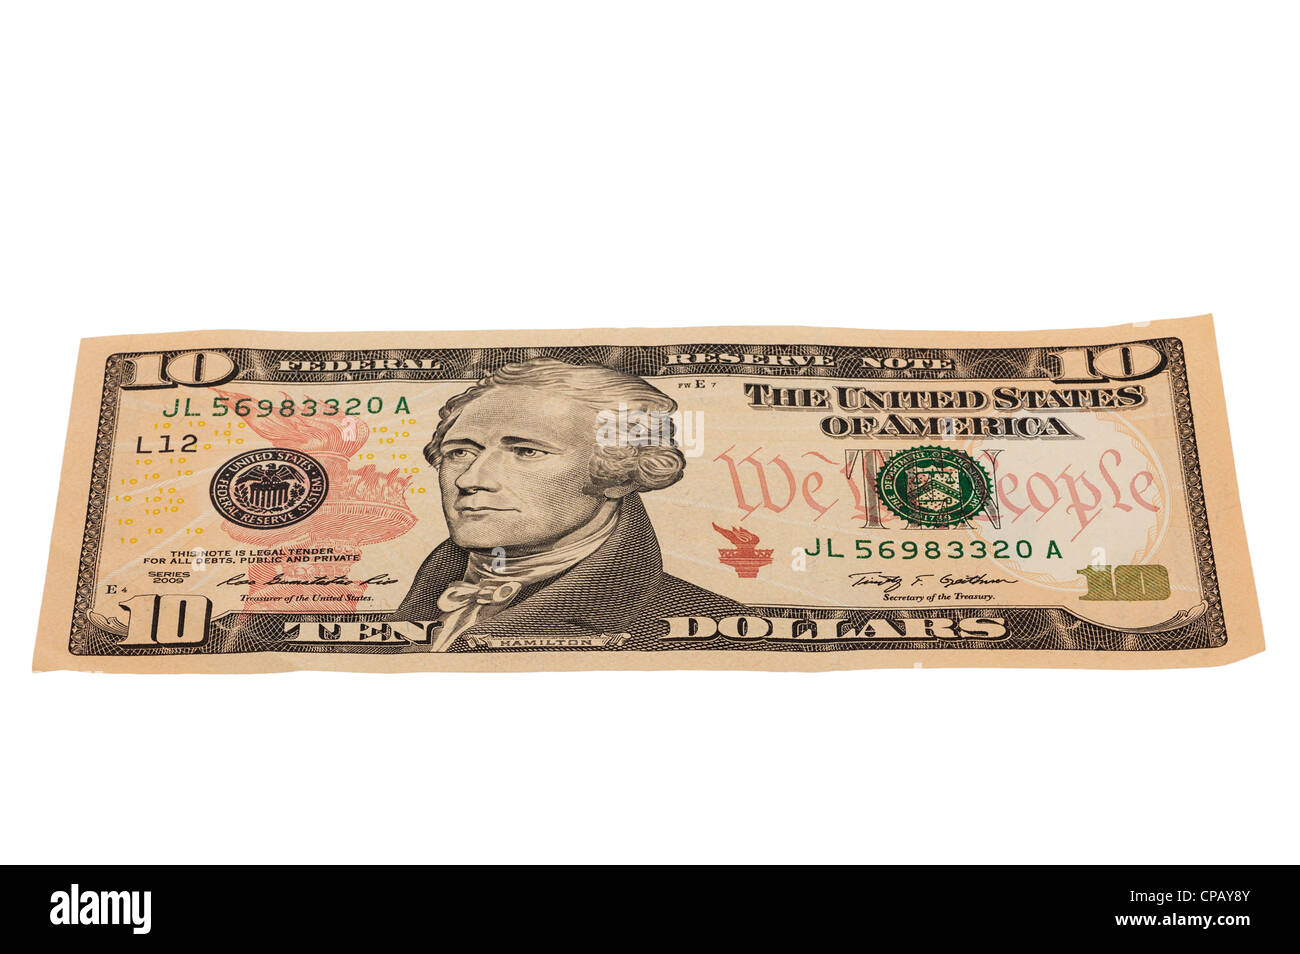 A 10 dollar note from America on a white background - Stock Image